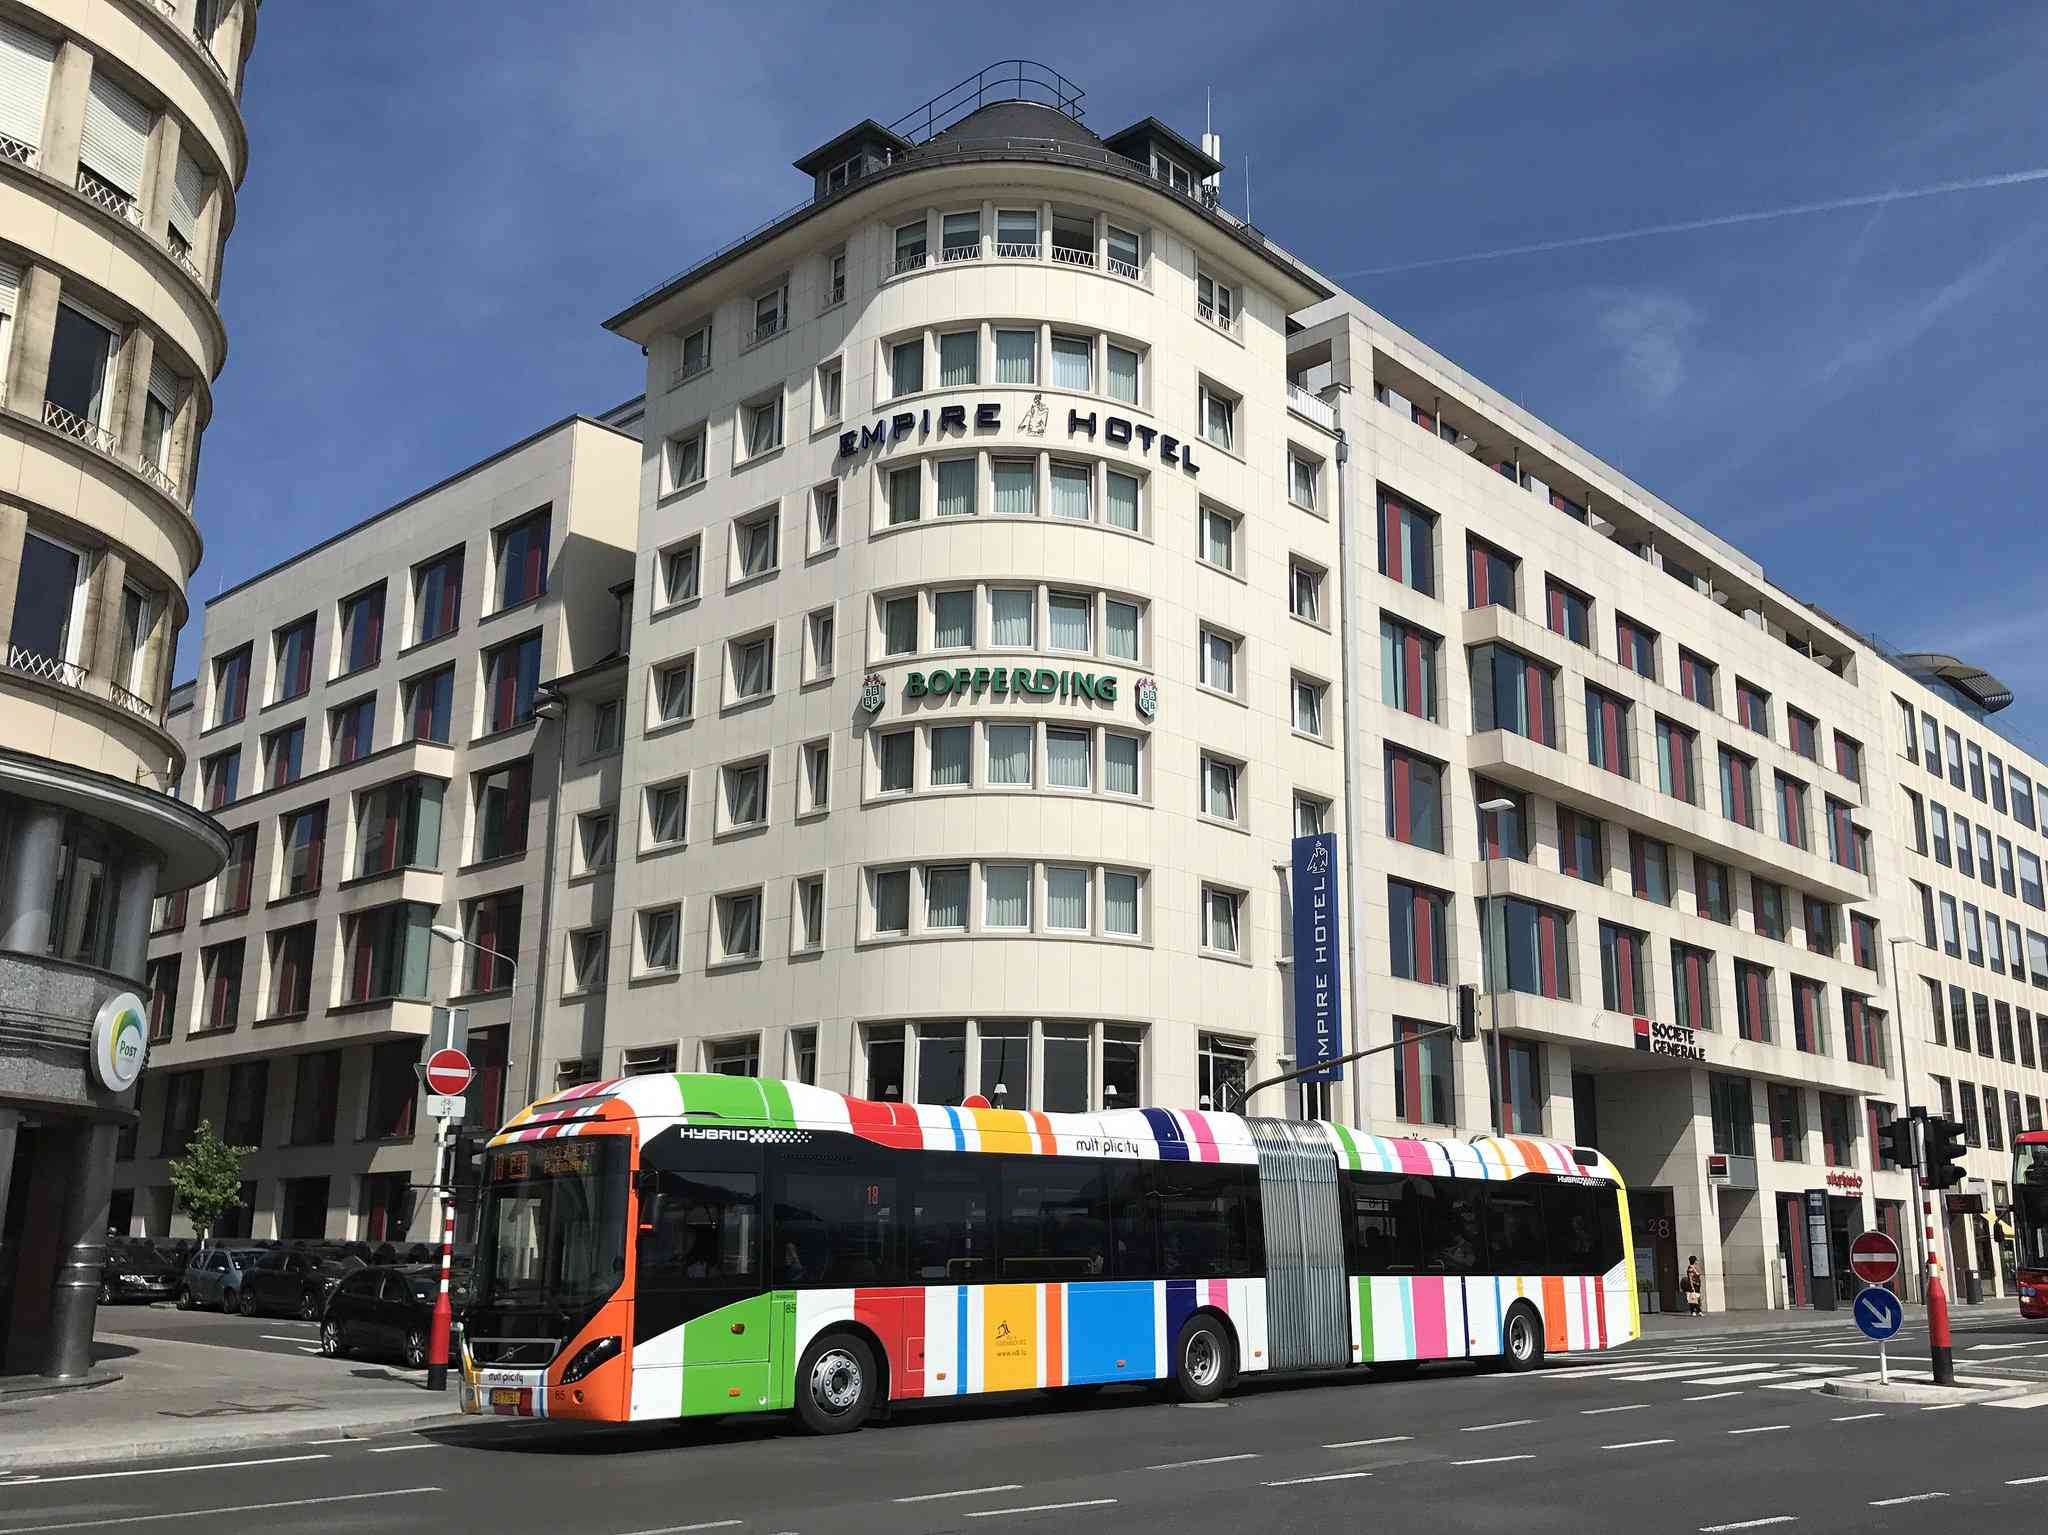 Bus in Luxembourg City